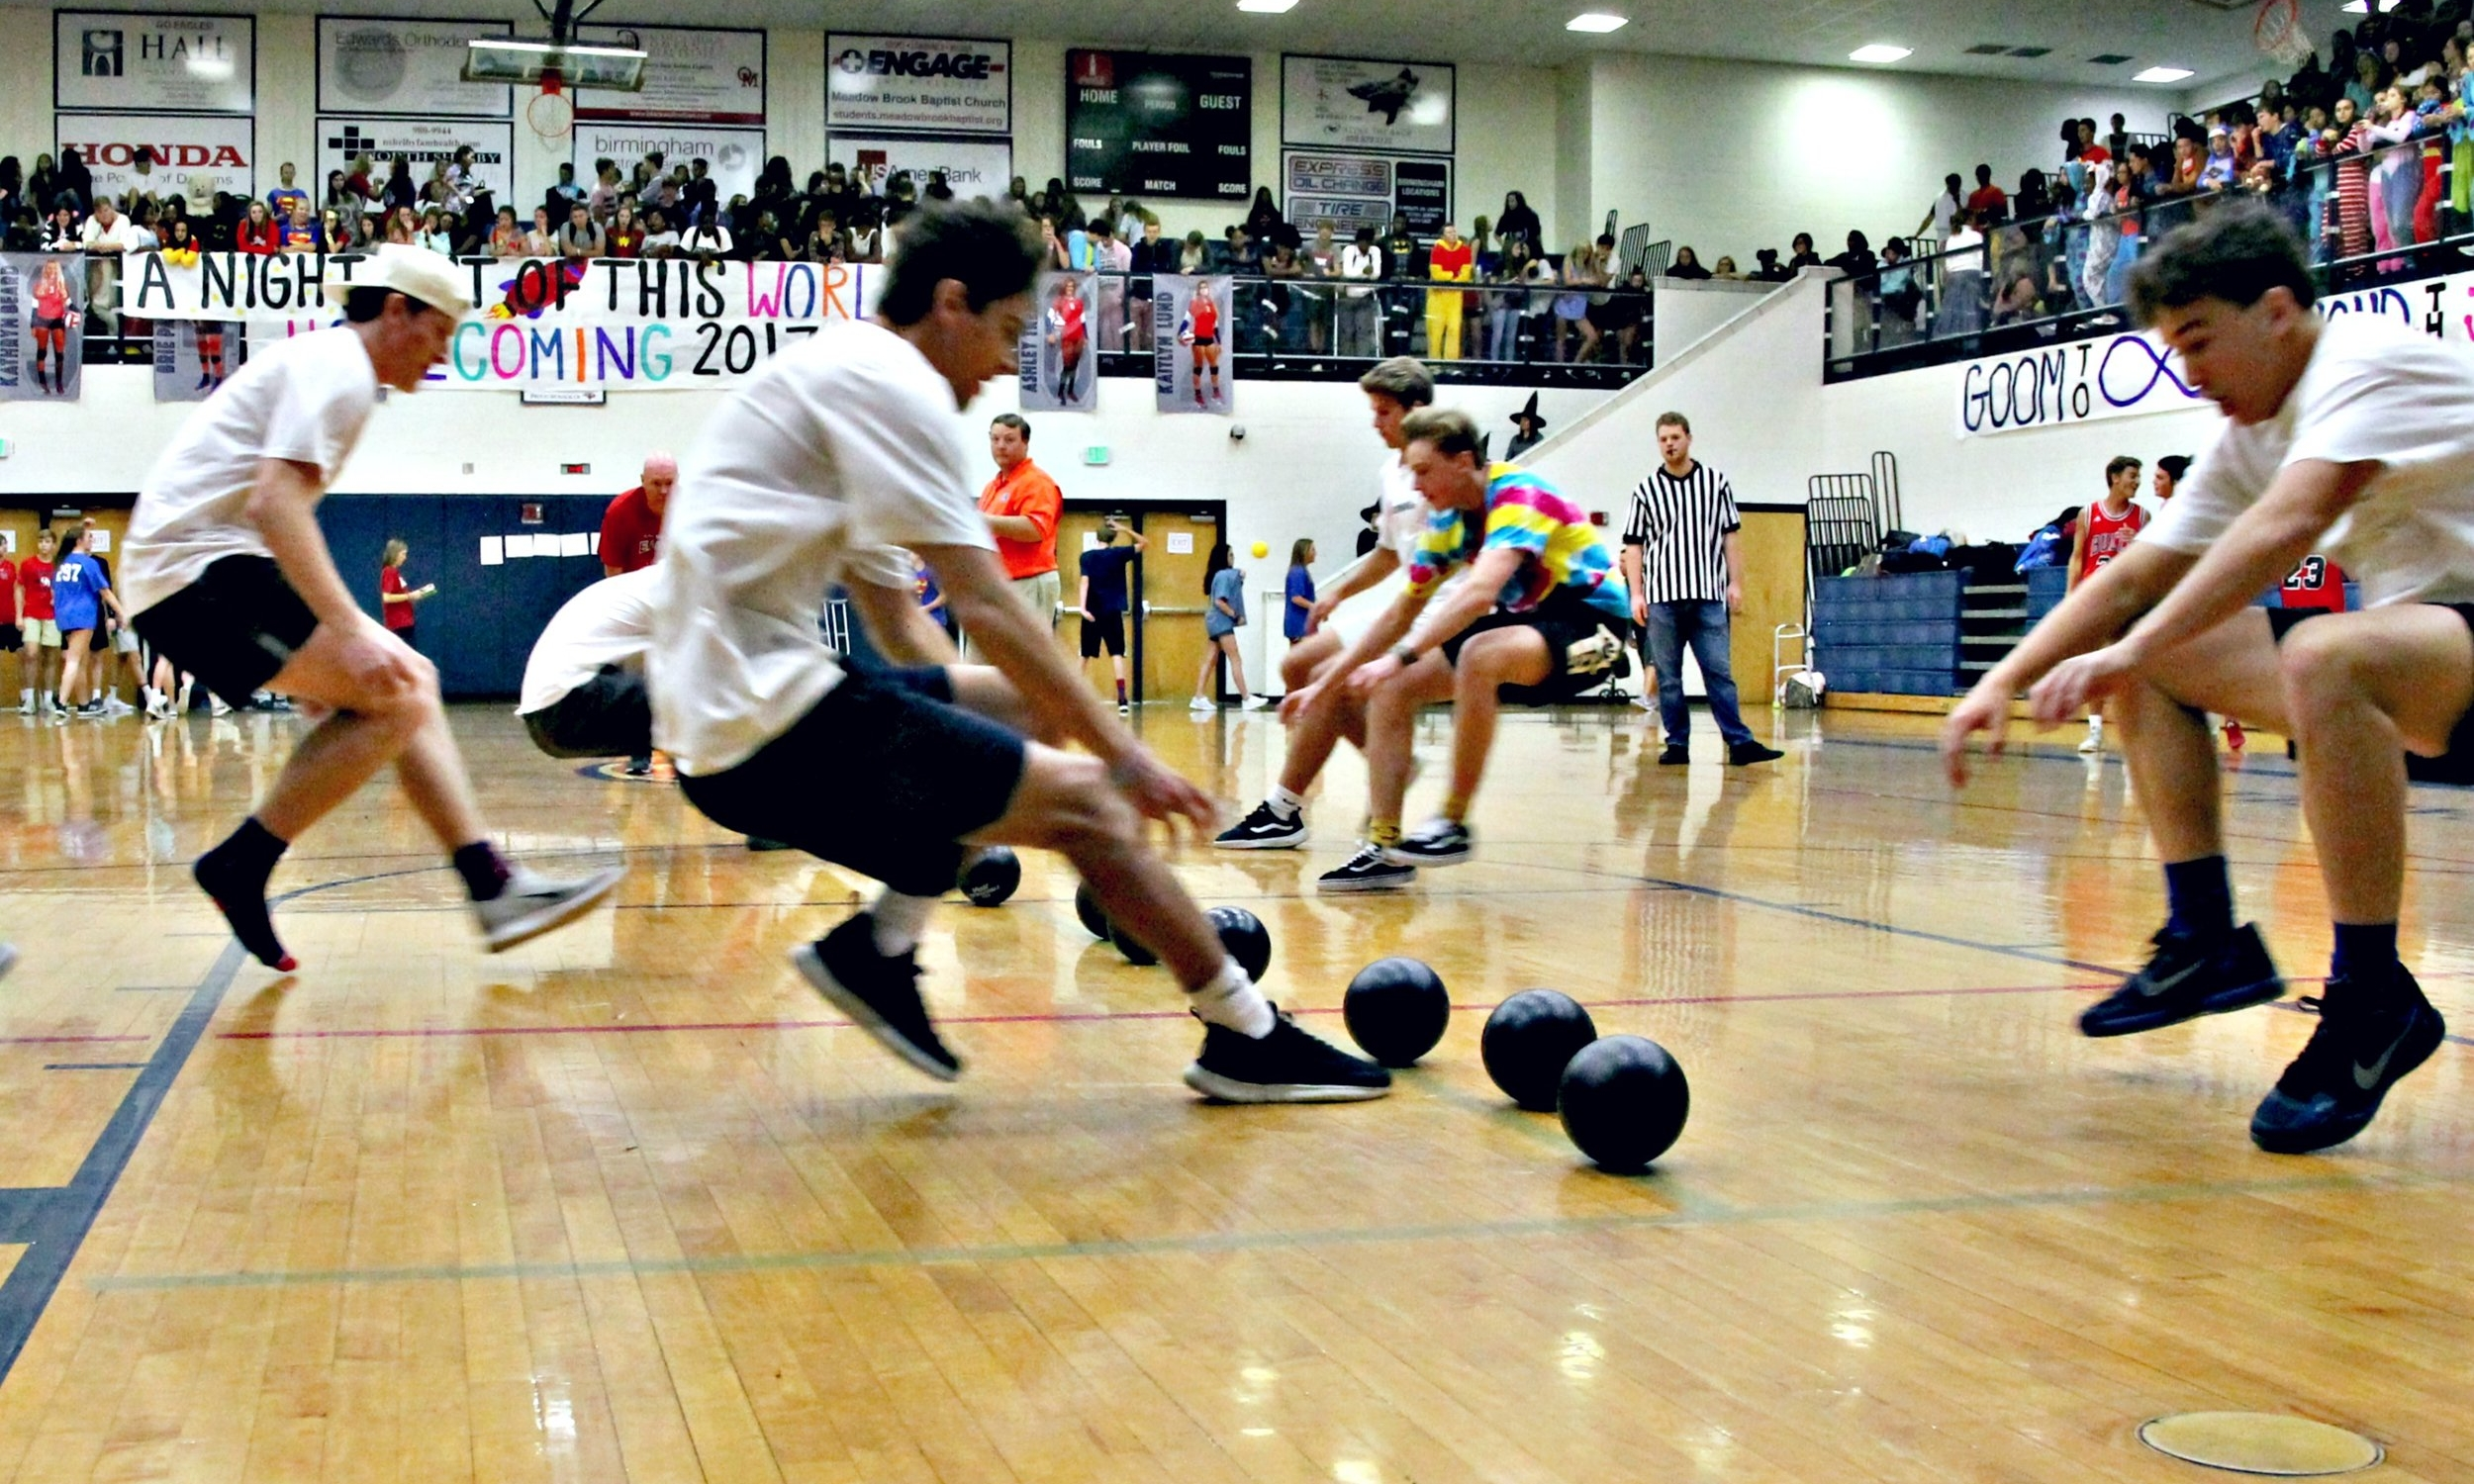 The dodgeball tournament is an event held only for the upperclassmen. Teams of 10 players square off in a head to head elimination tournament until only two teams are left to determine who will be the champion: Juniors or Seniors.